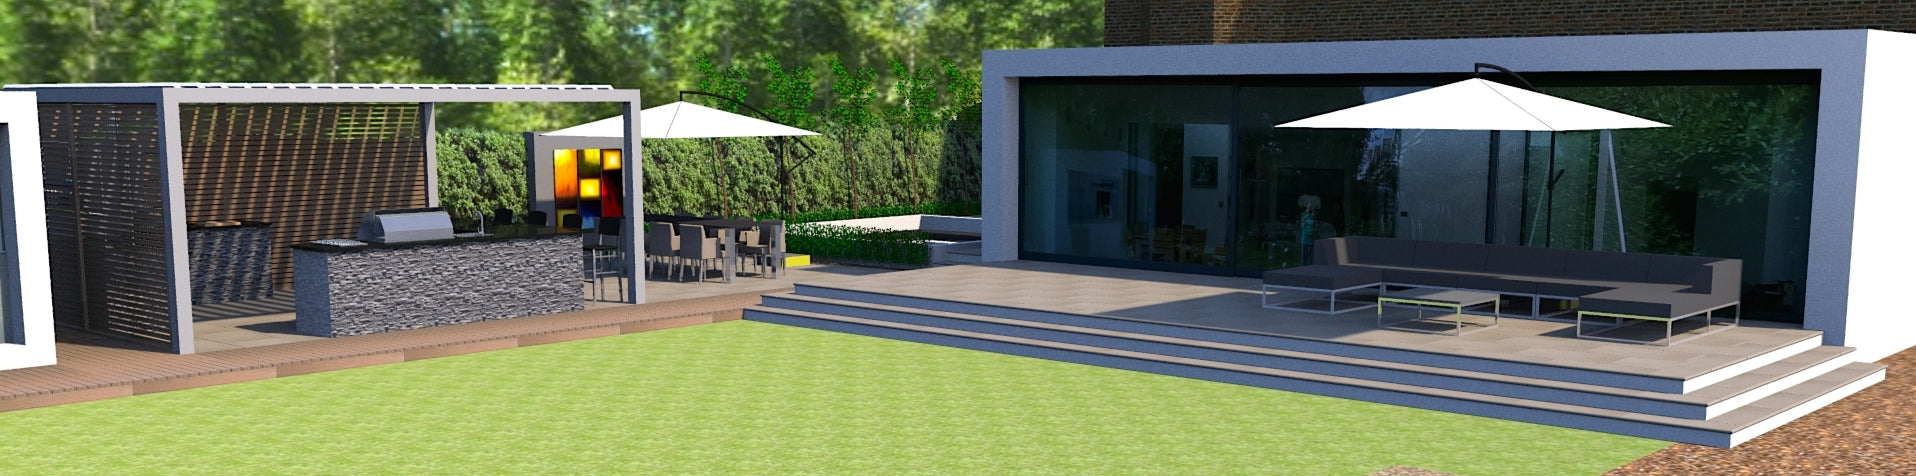 Lush Landscaping Design and Build Services - Slide 3